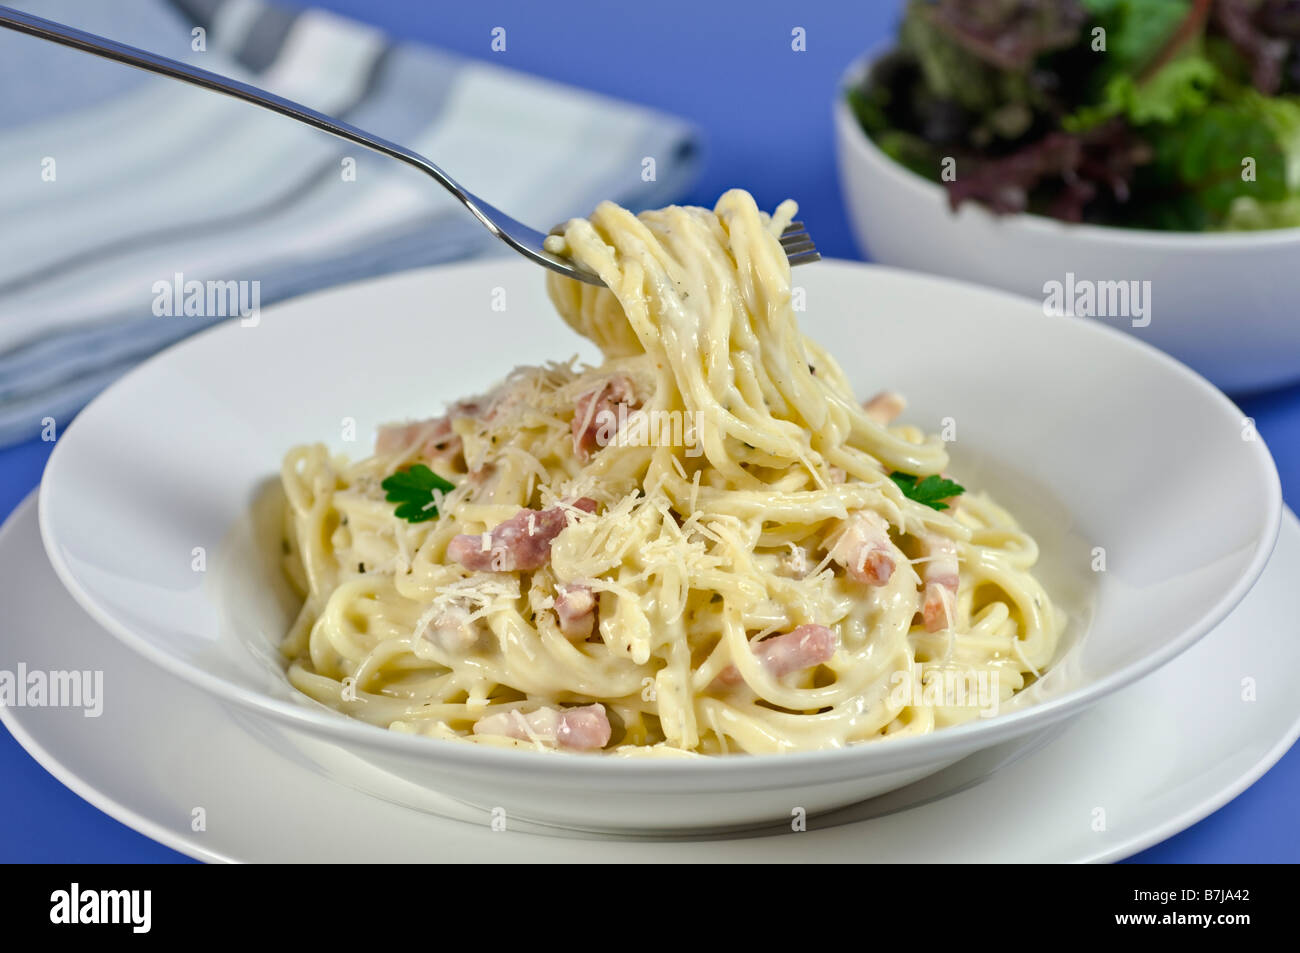 Cuisine italienne Spaghetti carbonara Photo Stock